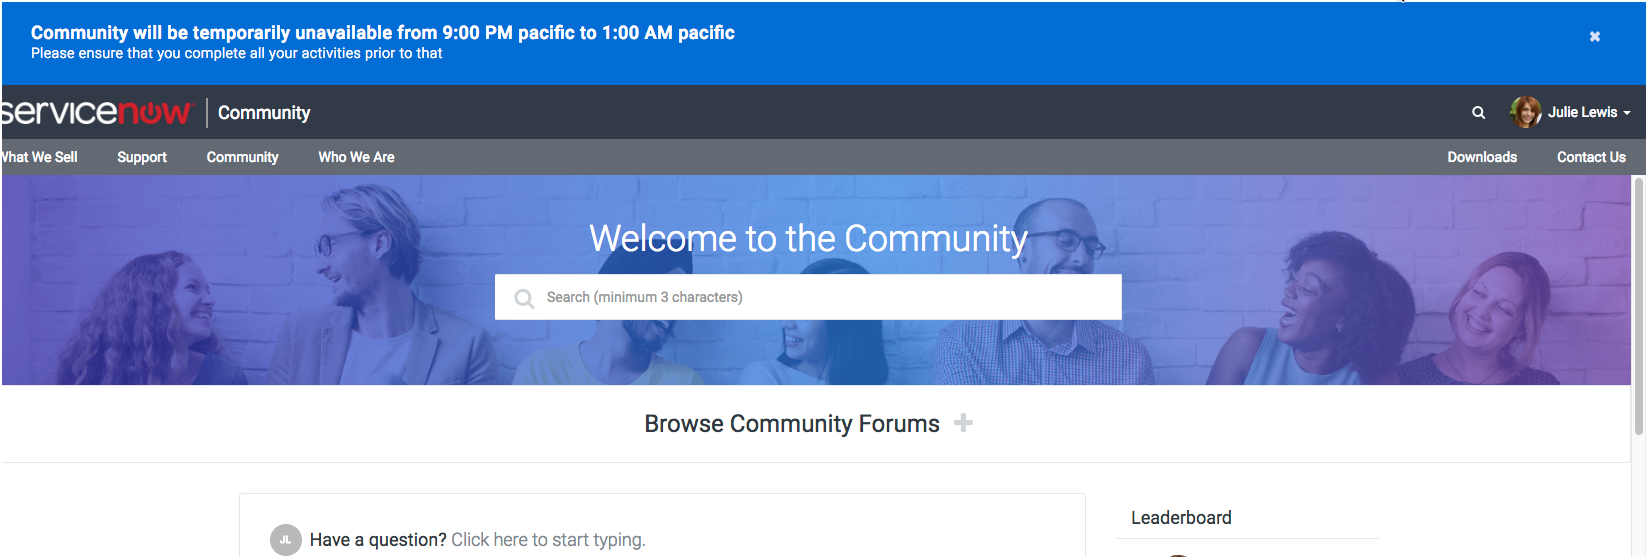 Communities: Asking Questions & Forum Subscription | ServiceNow